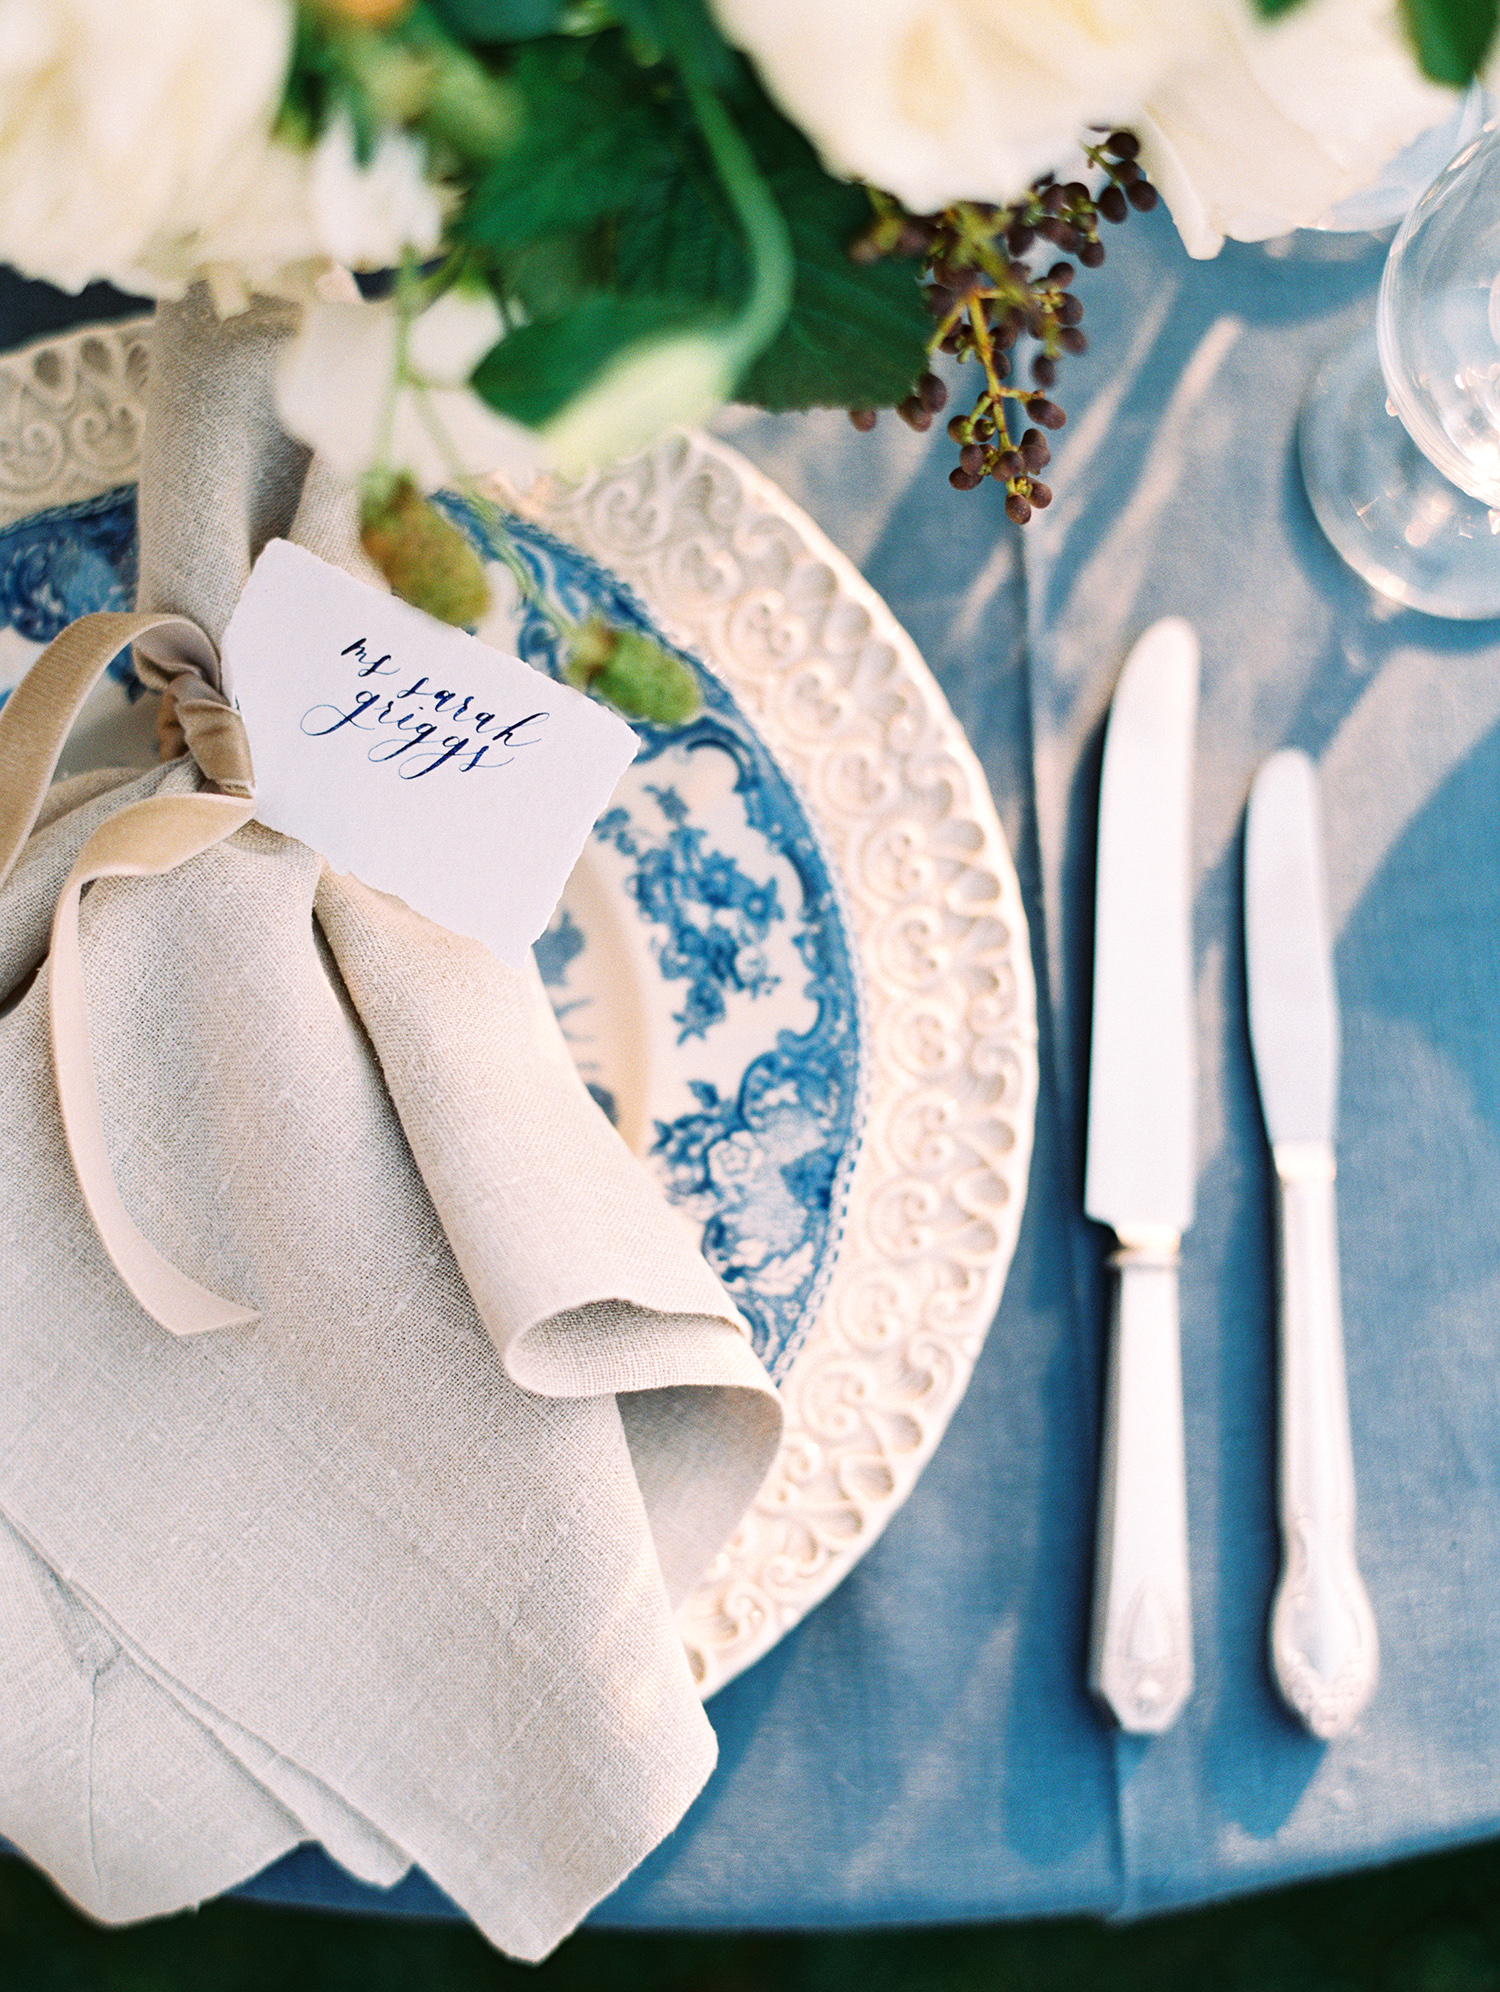 elizabeth scott wedding place setting